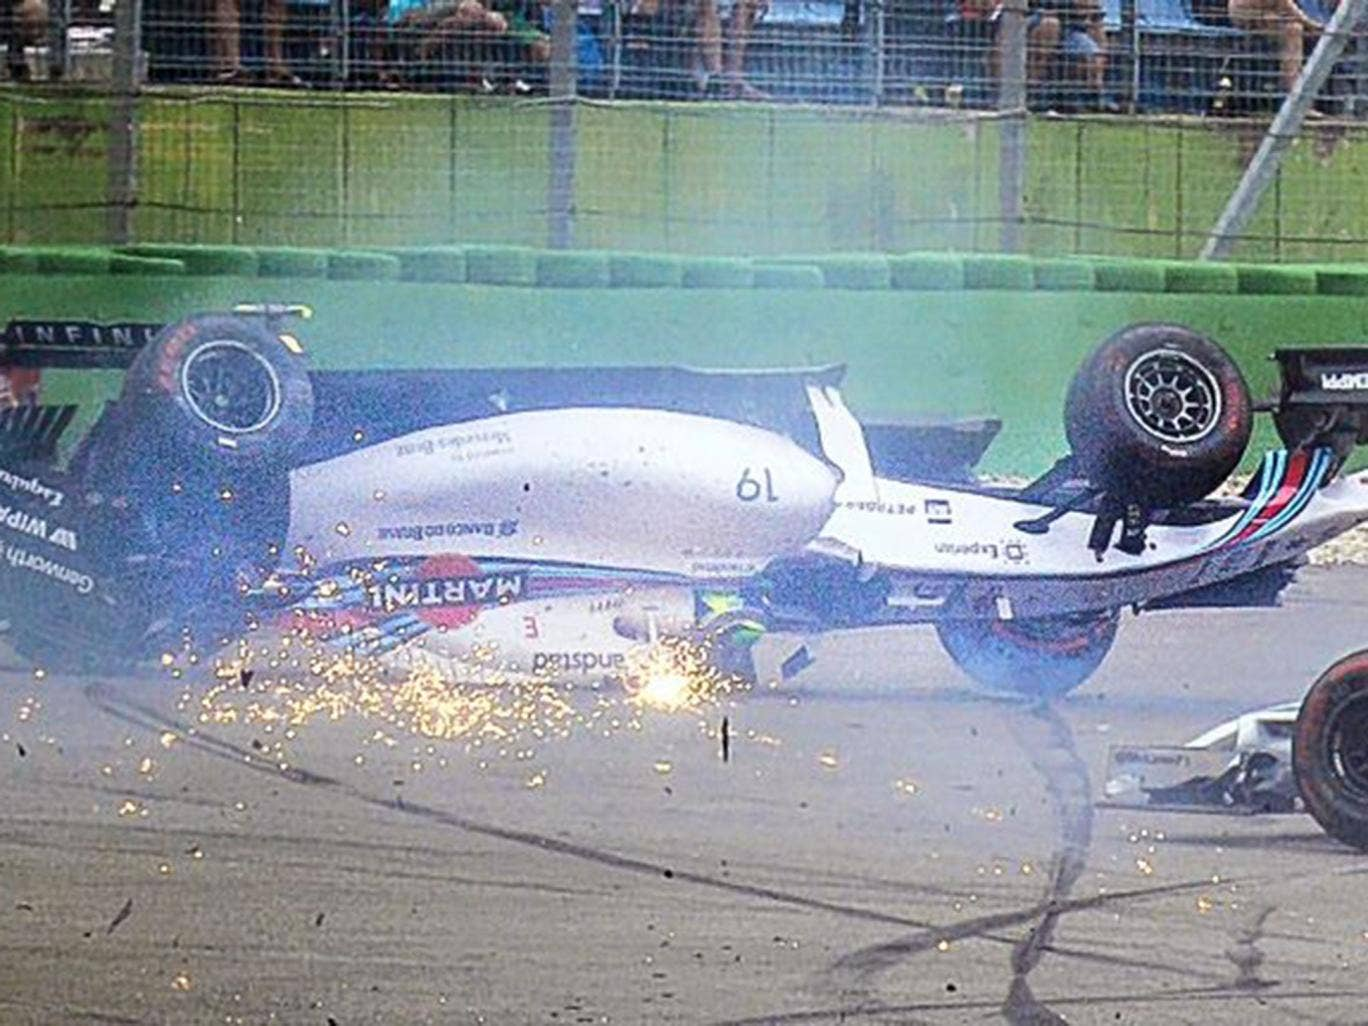 Felipe Massa's Williams ends upside down after colliding with Kevin Magnussen's McLaren at the first corner